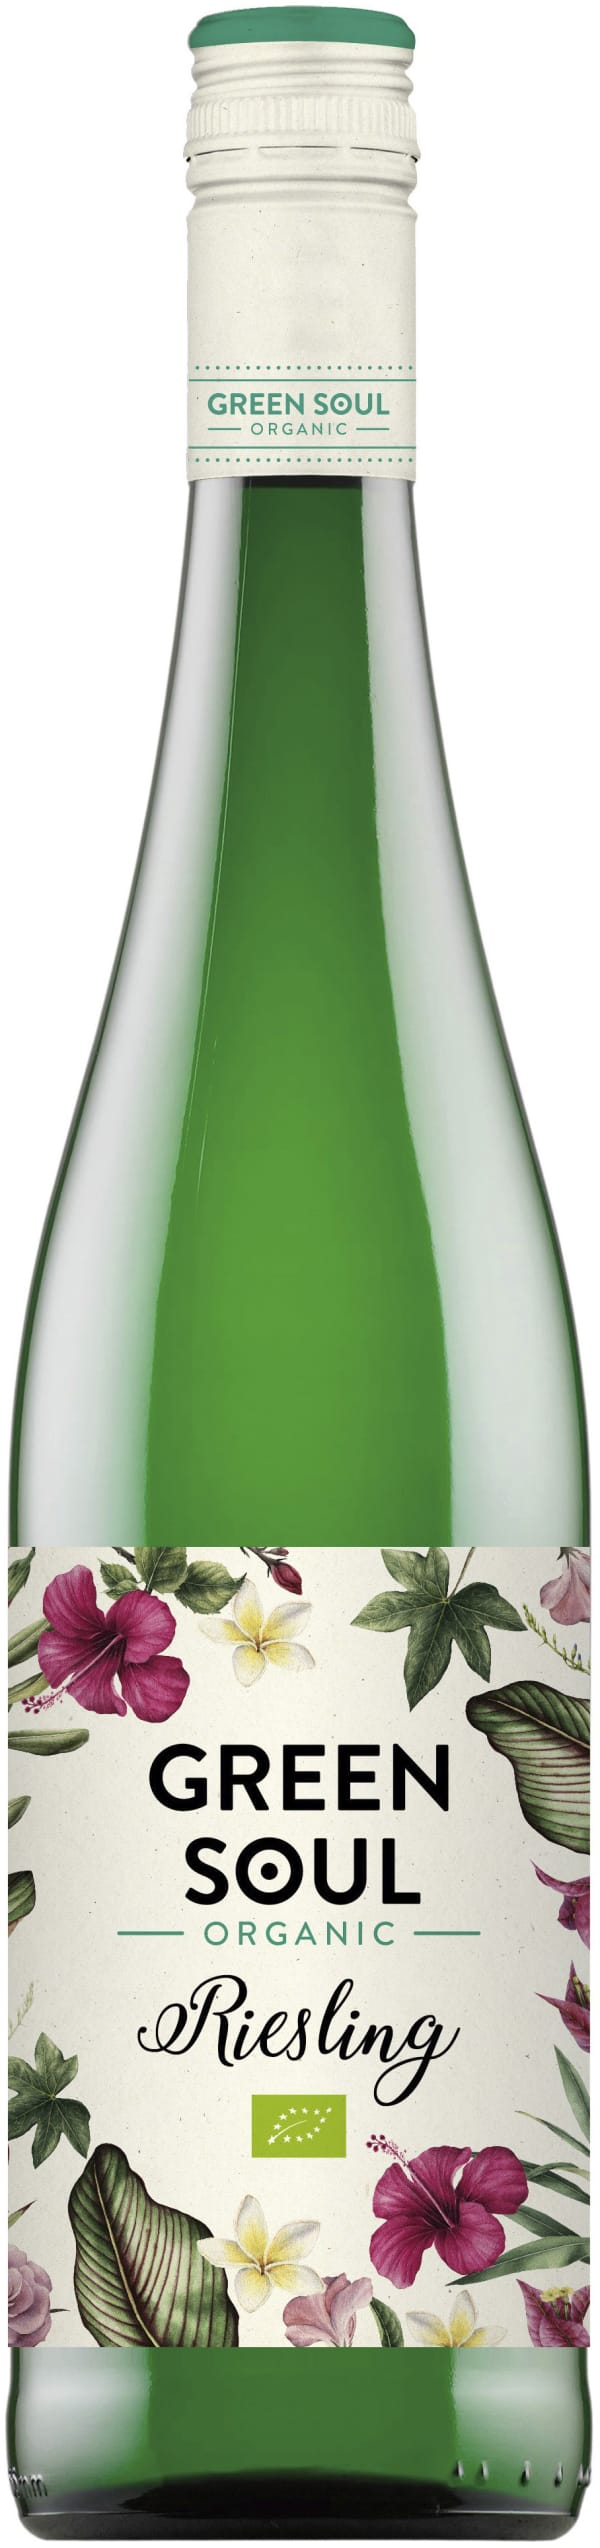 Green Soul Riesling 2016